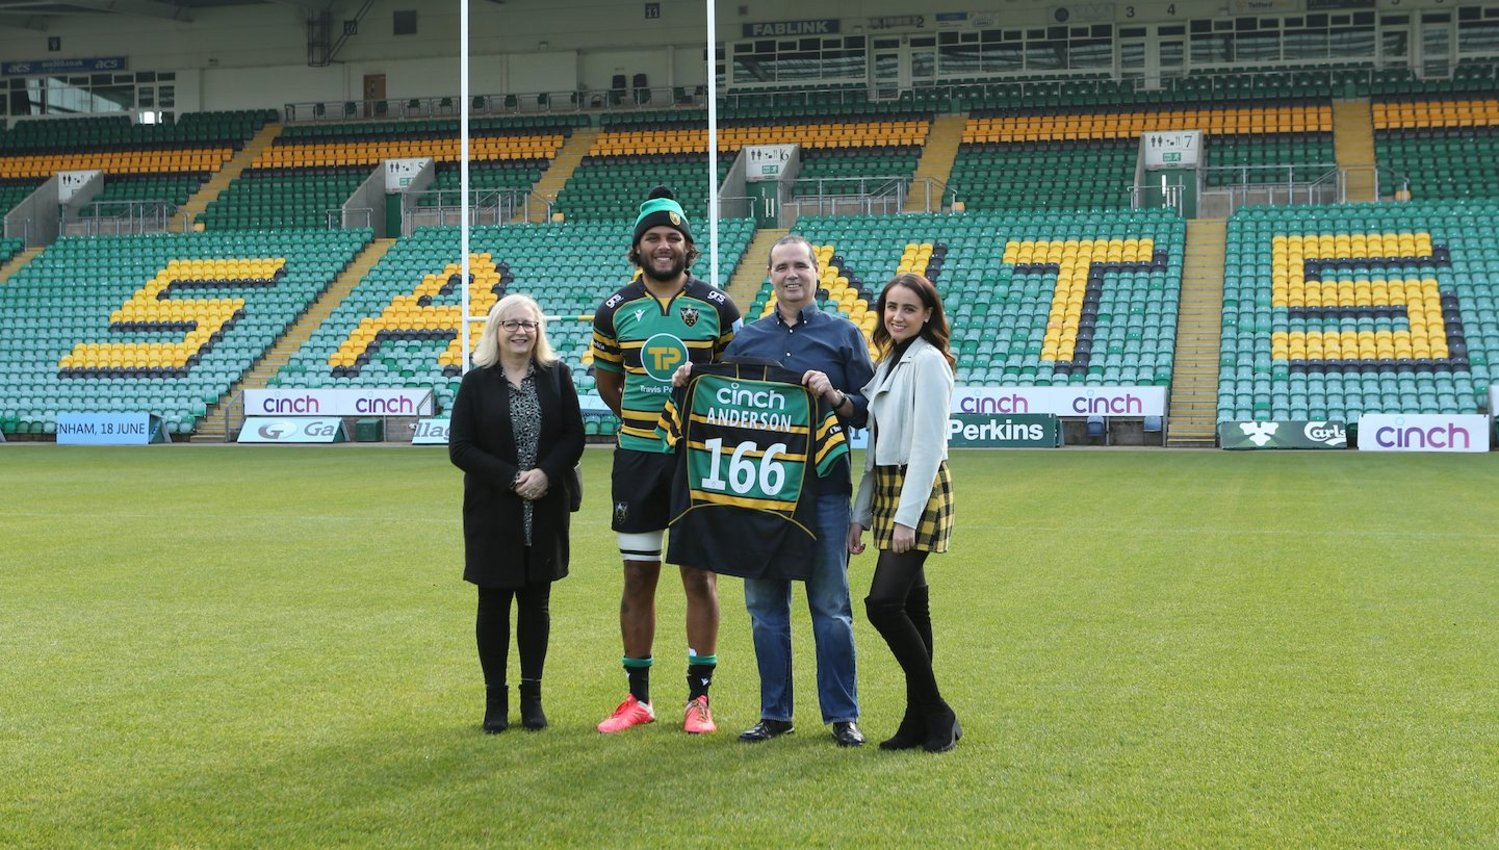 Ludlam welcomed Anderson's great grandson to Franklin's Gardens.